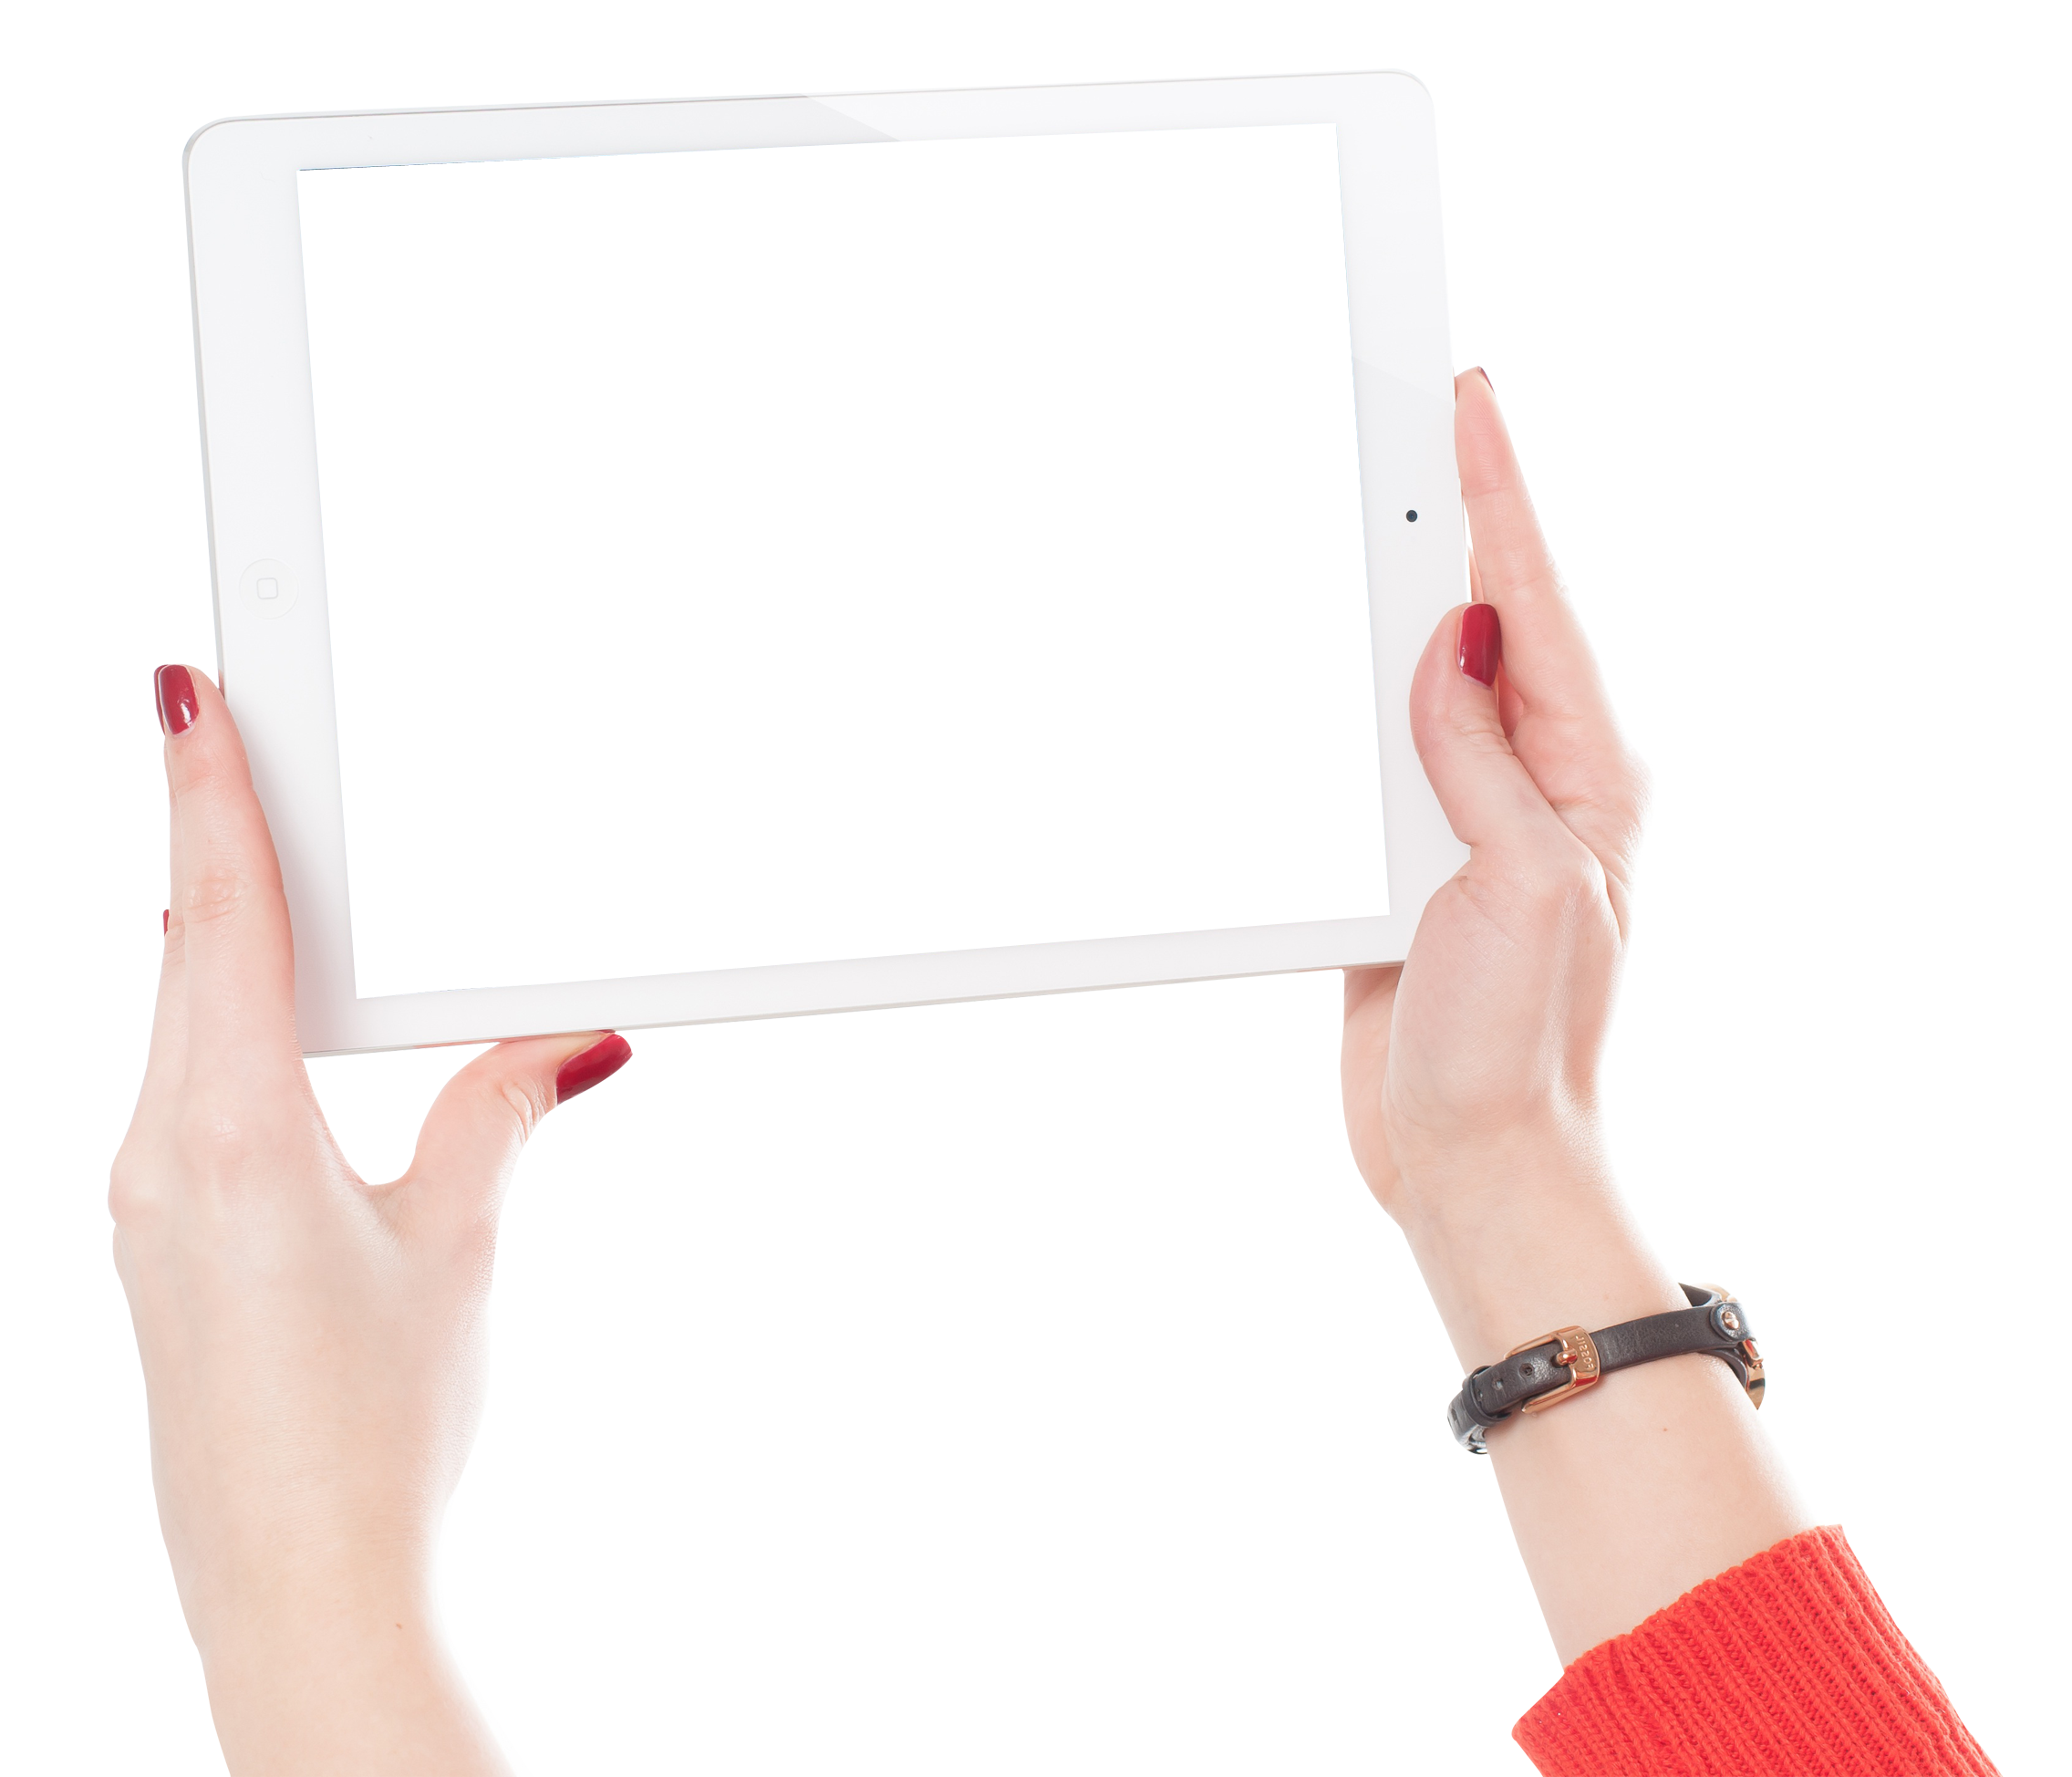 Ipad Hand Png - Download Woman Hands Holding iPad PNG Image for Free